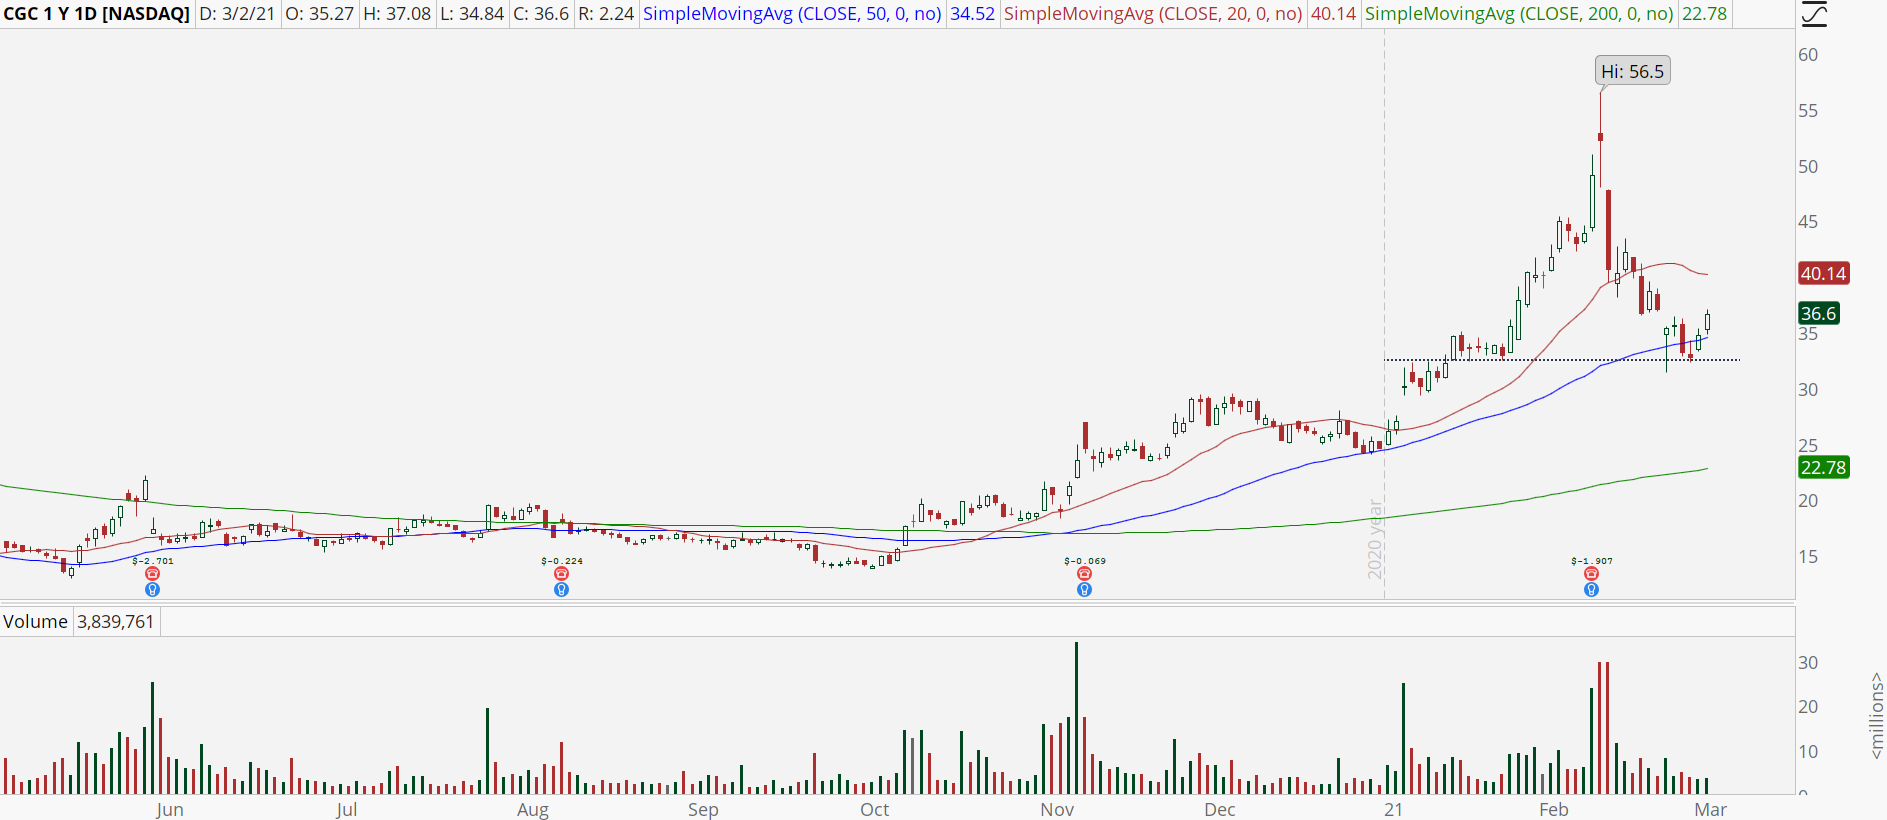 Canopy Growth (CGC) stock with pullback buy